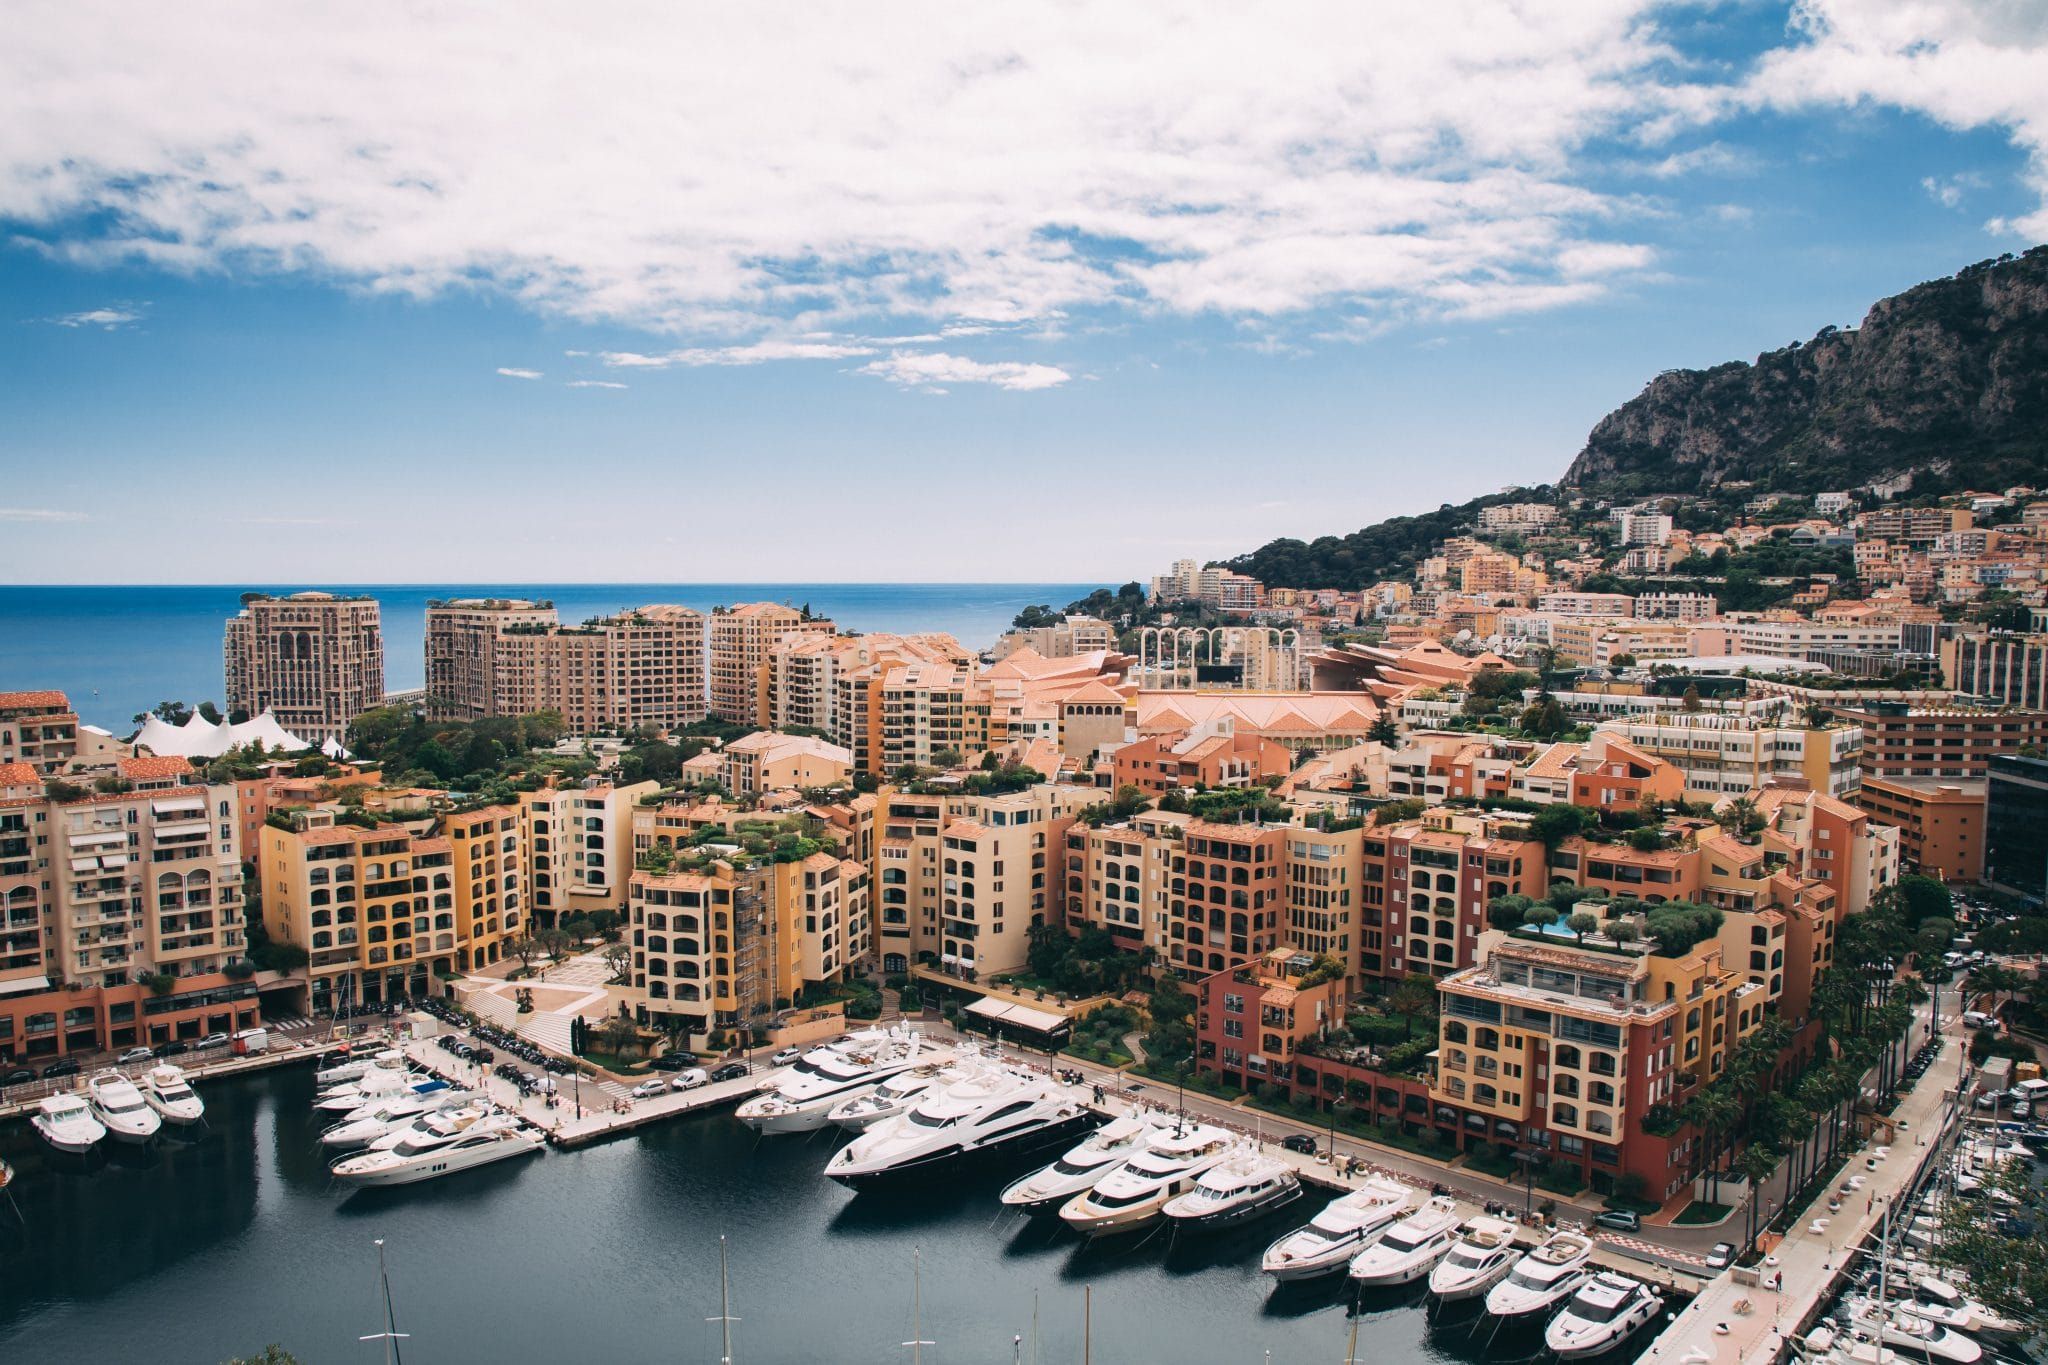 How to best experience the Monaco Grand Prix